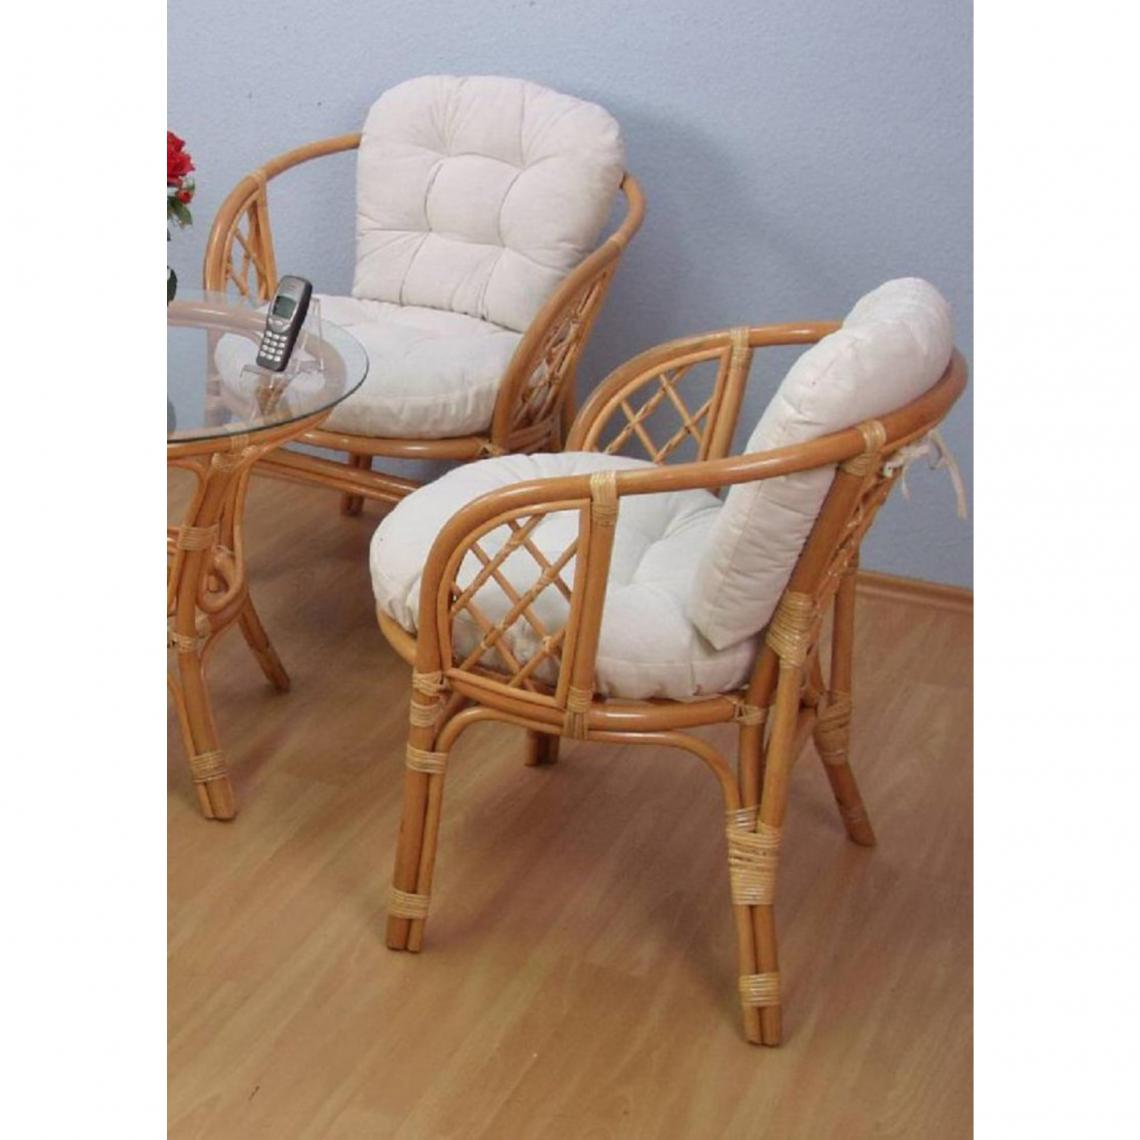 Lot De 2 Fauteuils Ensemble De 2 Fauteuils En Rotin Lot De 2 Marron Réf Ho1142155 3645935